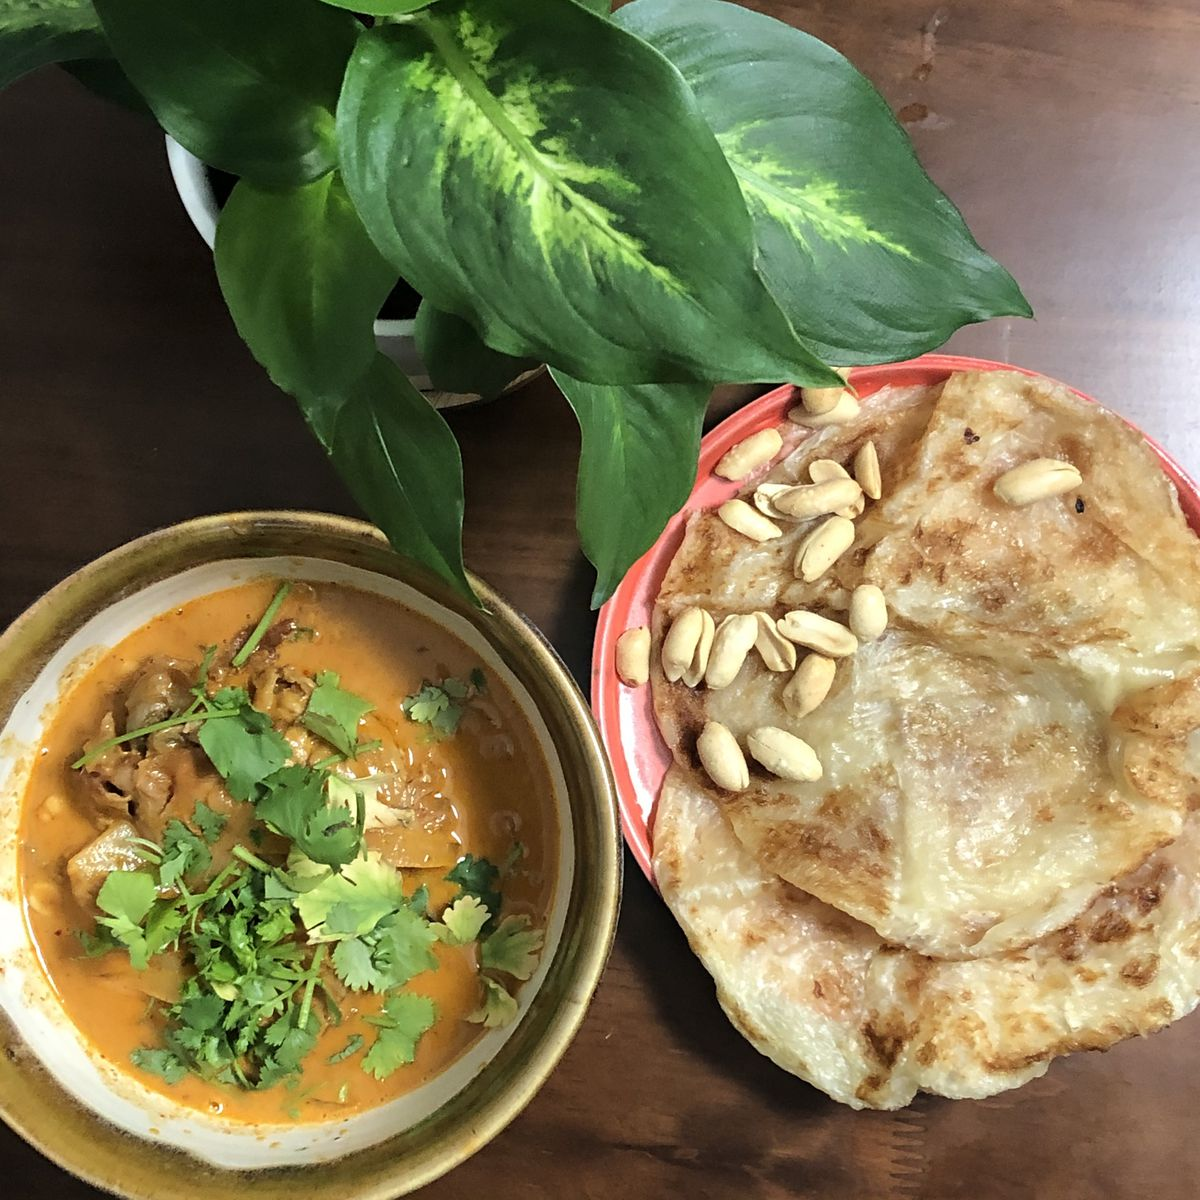 A bowl with an orange curry sitting next to a plate with crispy flatbreads